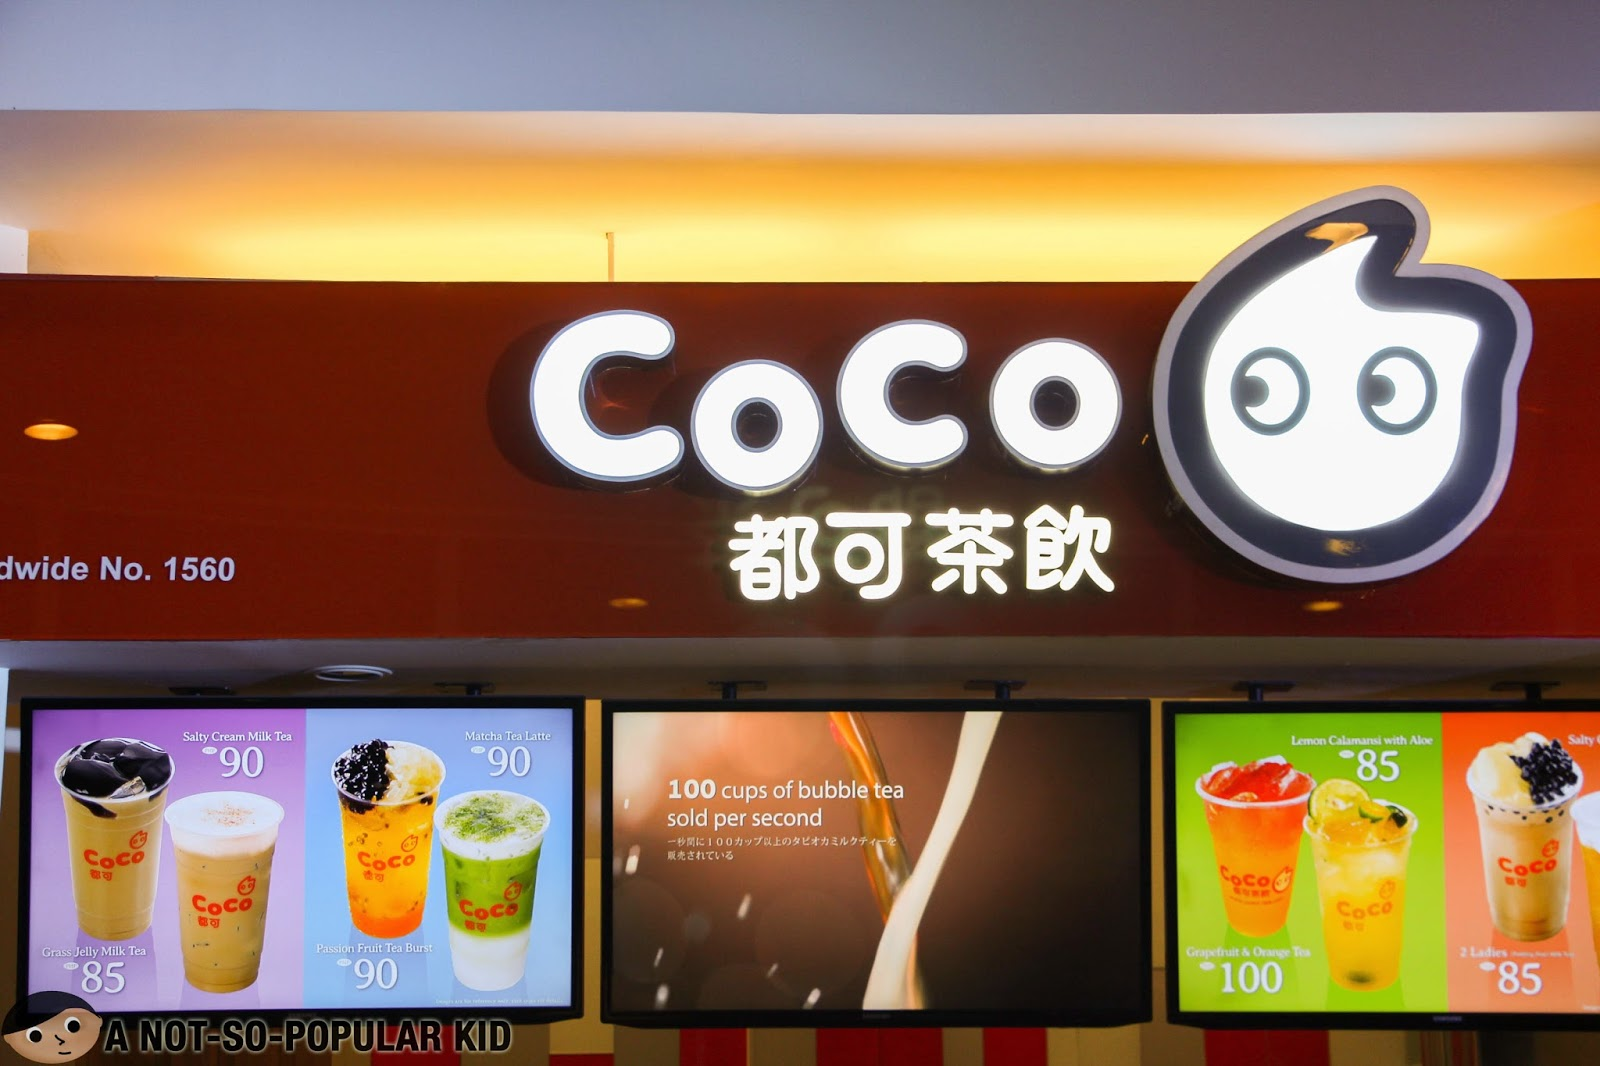 The first branch of CoCo Fresh Tea & Juice in the Philippines